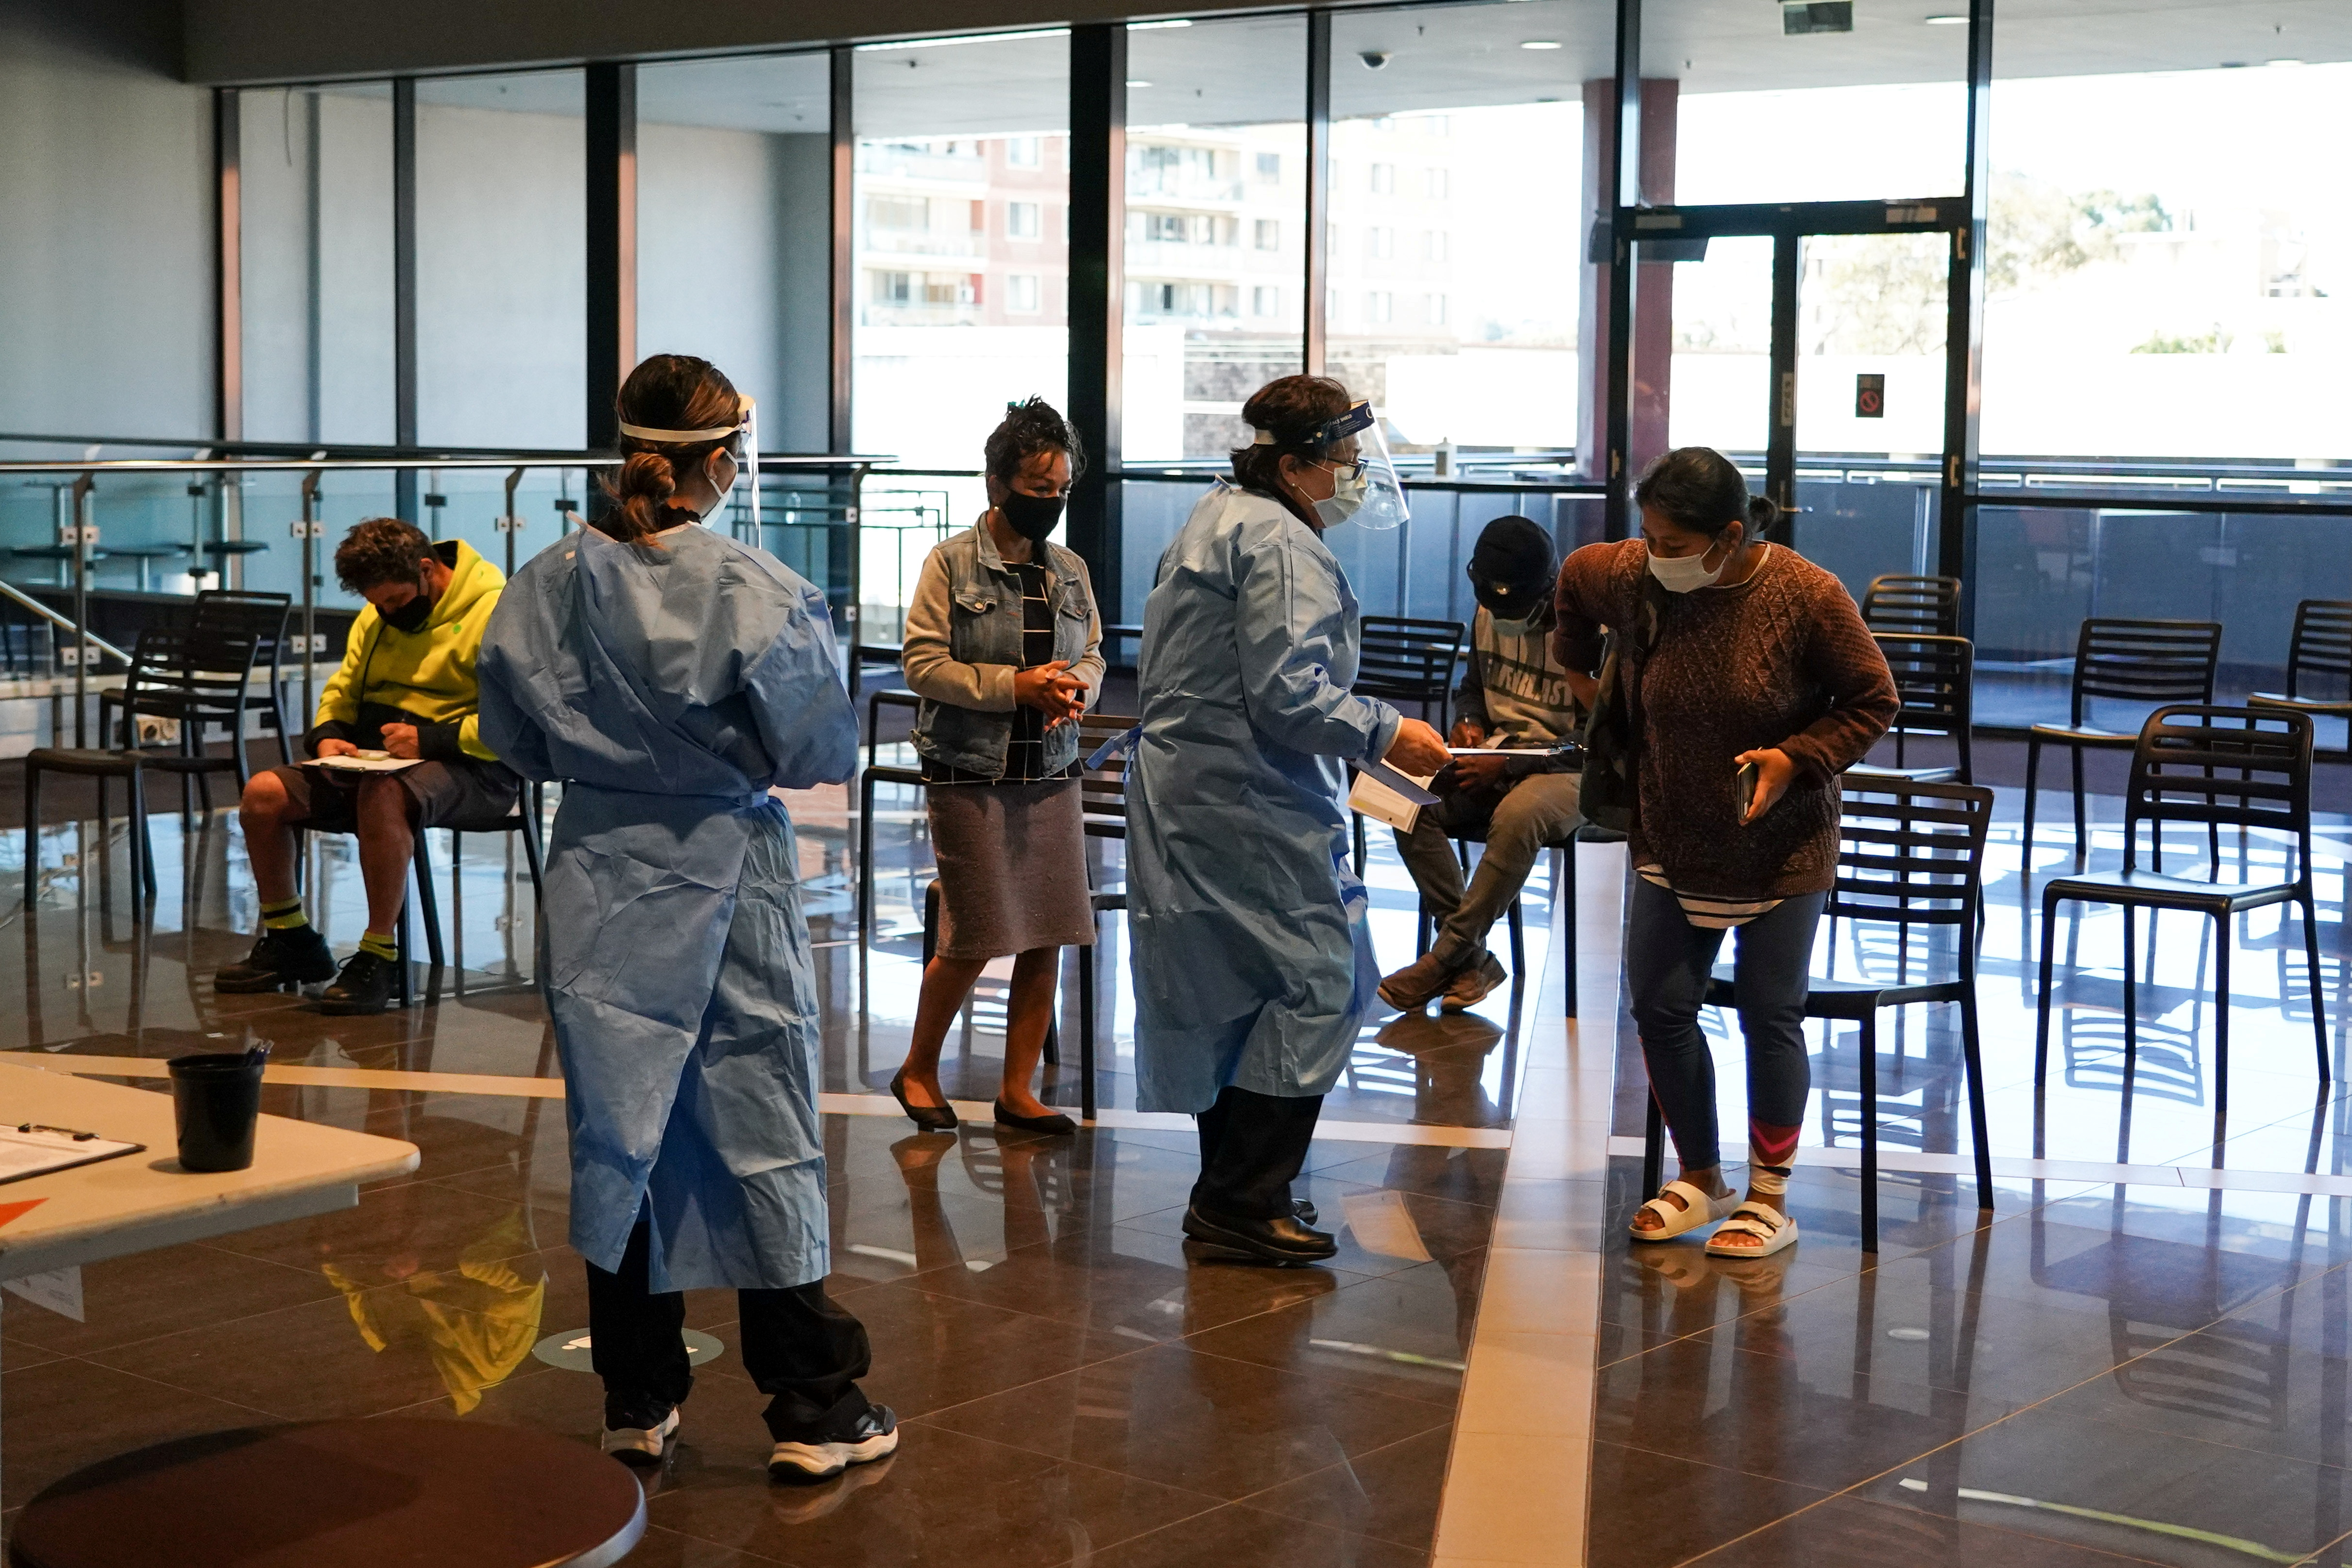 Medical staff assist members of the public in the waiting area at a coronavirus disease (COVID-19) vaccination clinic at the Bankstown Sports Club as the city experiences an extended lockdown, in Sydney, Australia, August 3, 2021. REUTERS/Loren Elliott